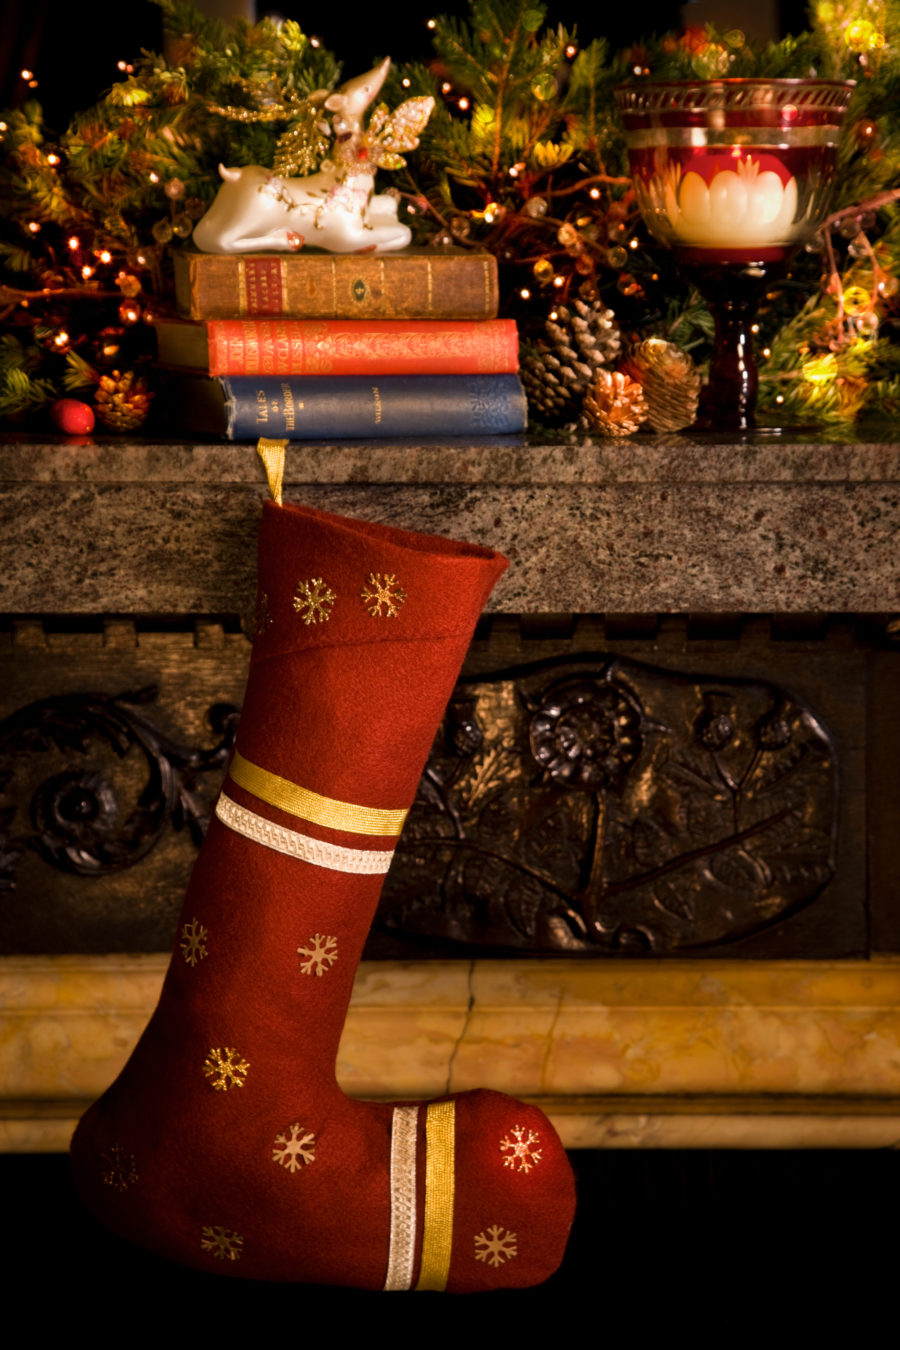 Christmas fireplace, De Vere time of the year | by McAteer Photograph